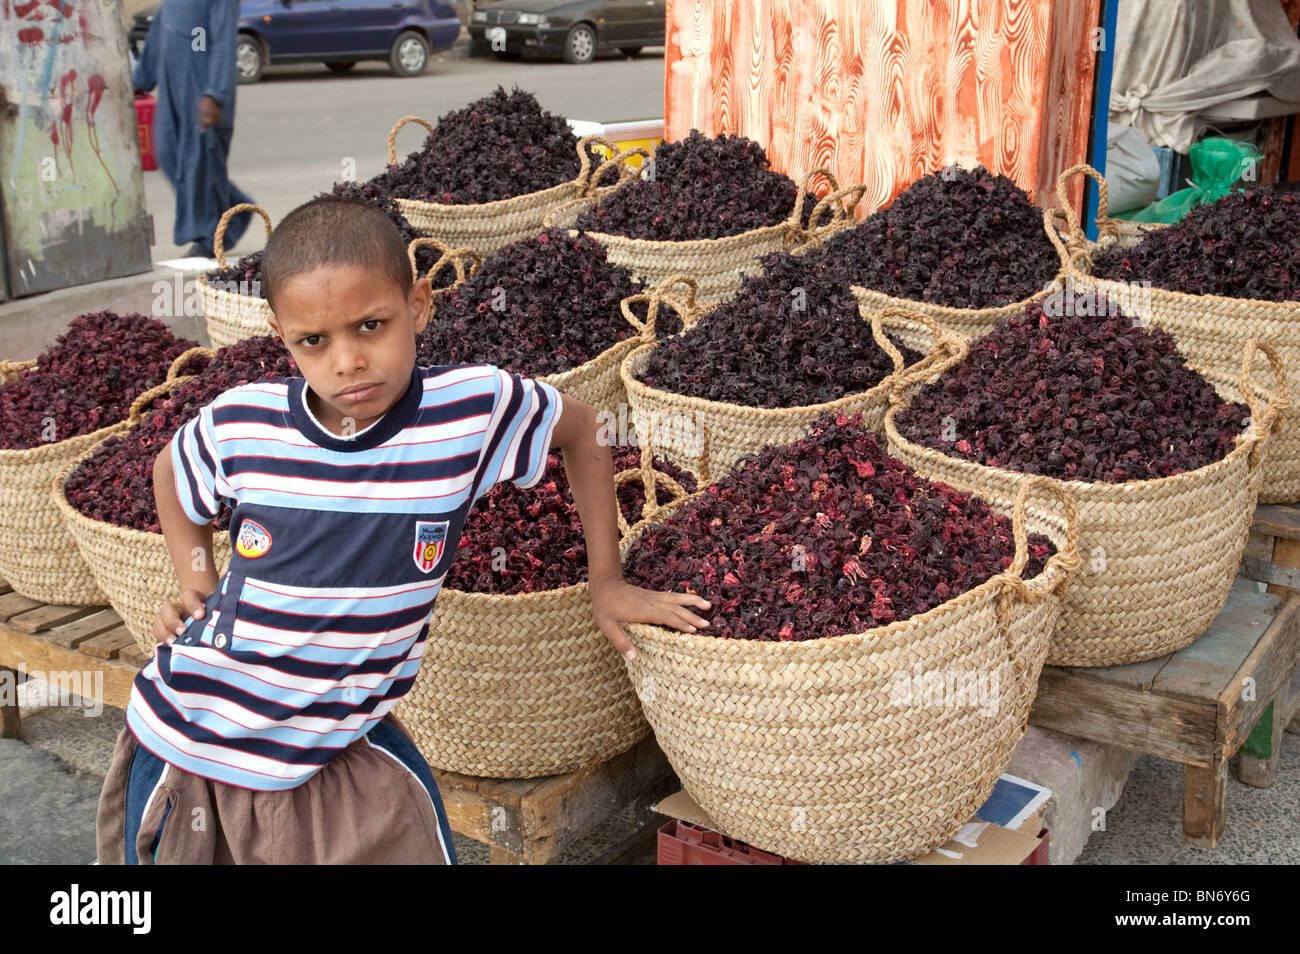 A young egyptian nubian boy by his herb stall selling dried hibiscus flowers, the spice market, Aswan, Upper Egypt - Stock Image